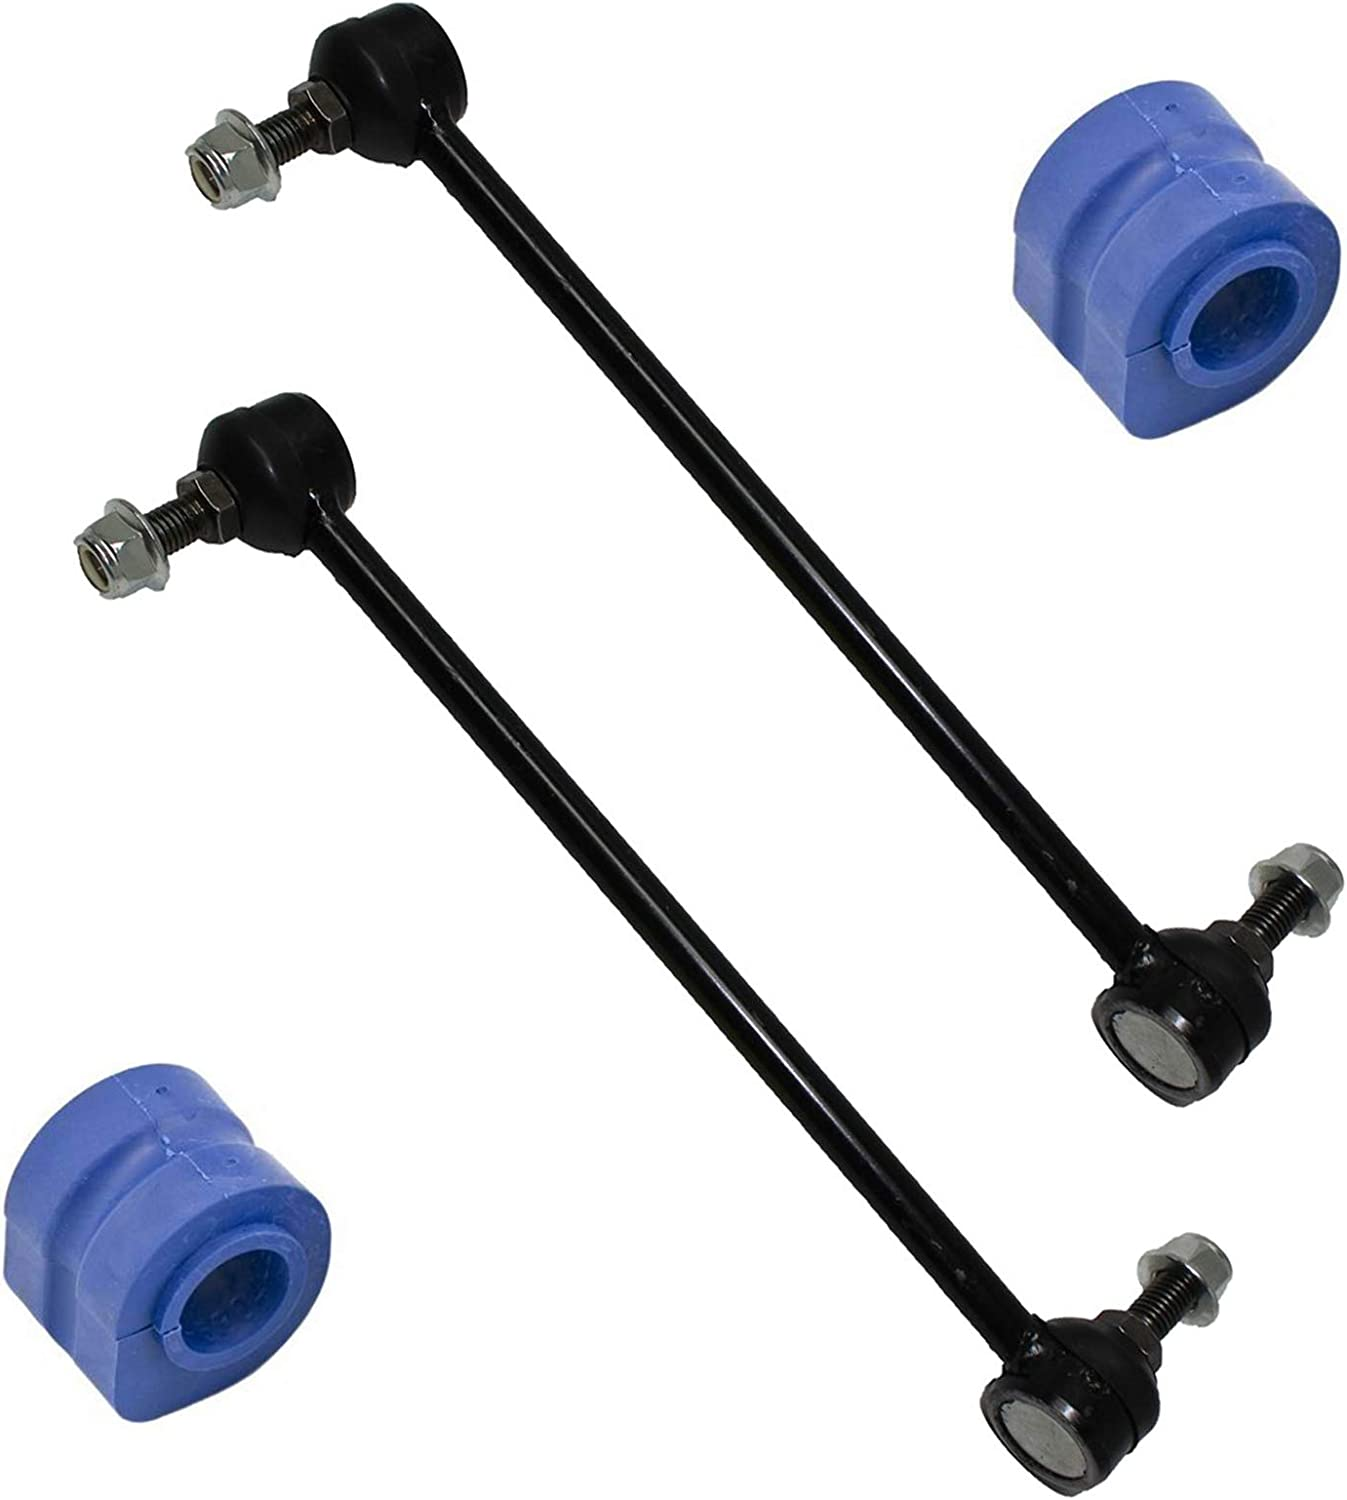 Detroit Axle - Front Sway Bar Bushings Phoenix Mall with Replacement fo Links Seasonal Wrap Introduction